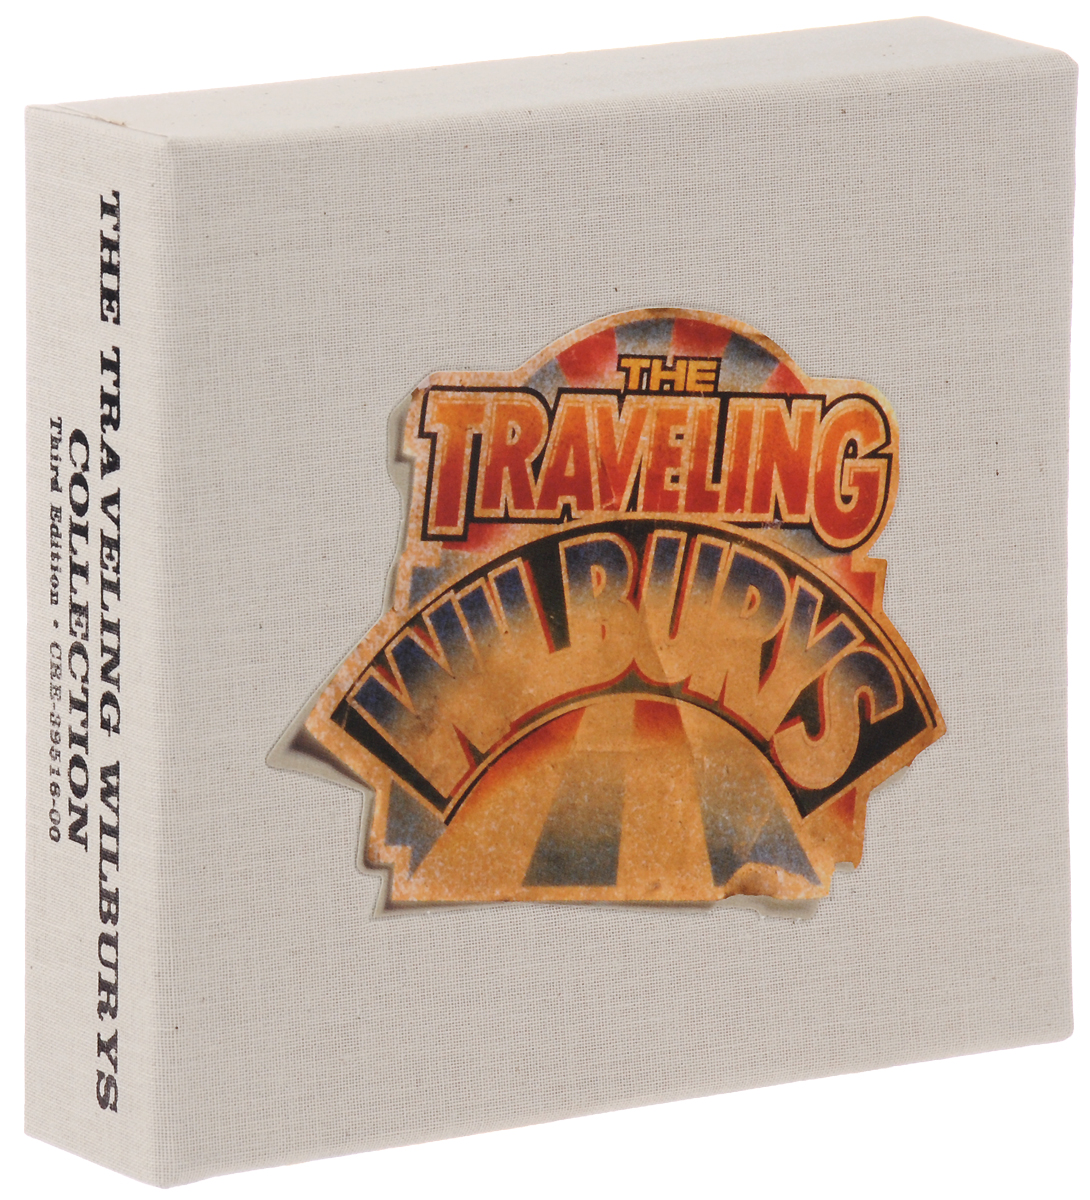 The Traveling Wilburys The Traveling Wilburys. The Traveling Wilburys Collection (2 CD + DVD) cd billie holiday the centennial collection